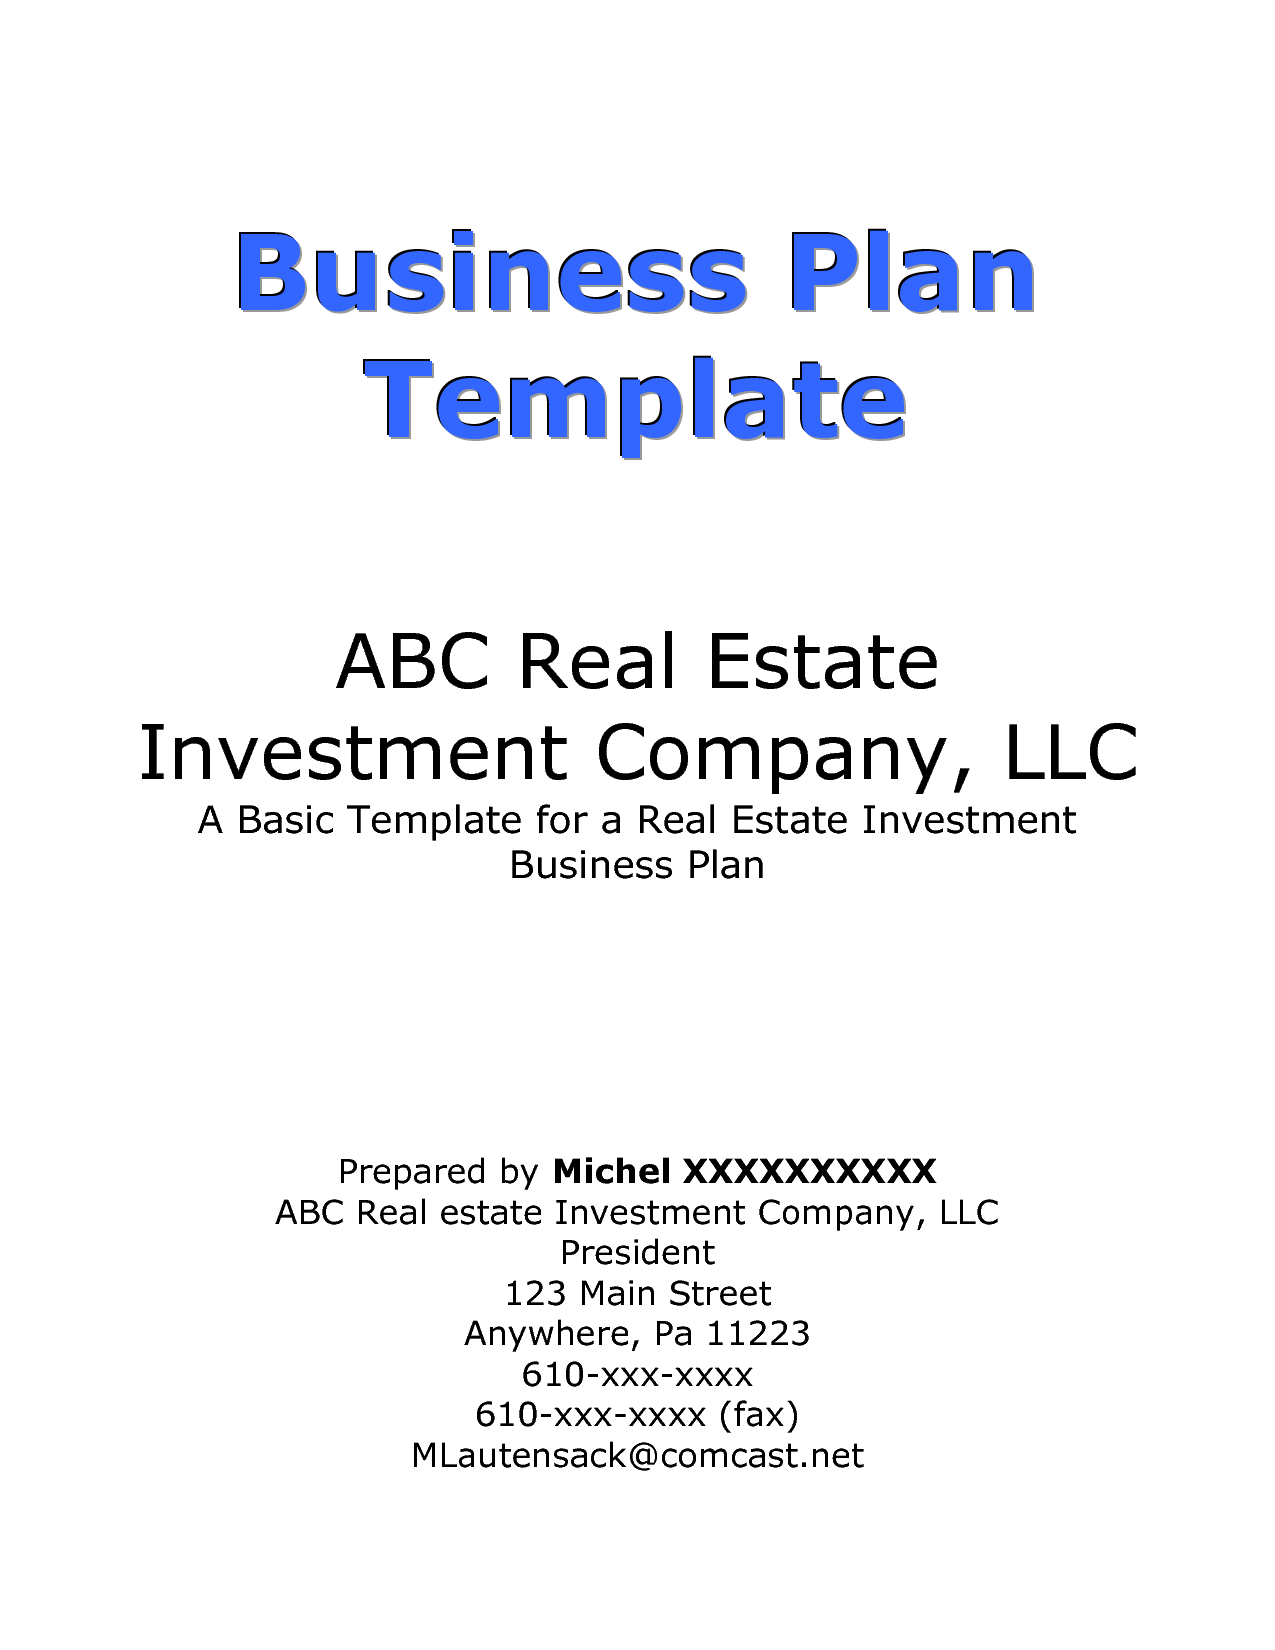 How to Write Business Plan Cover Page for Investors | RoiInvesting.com